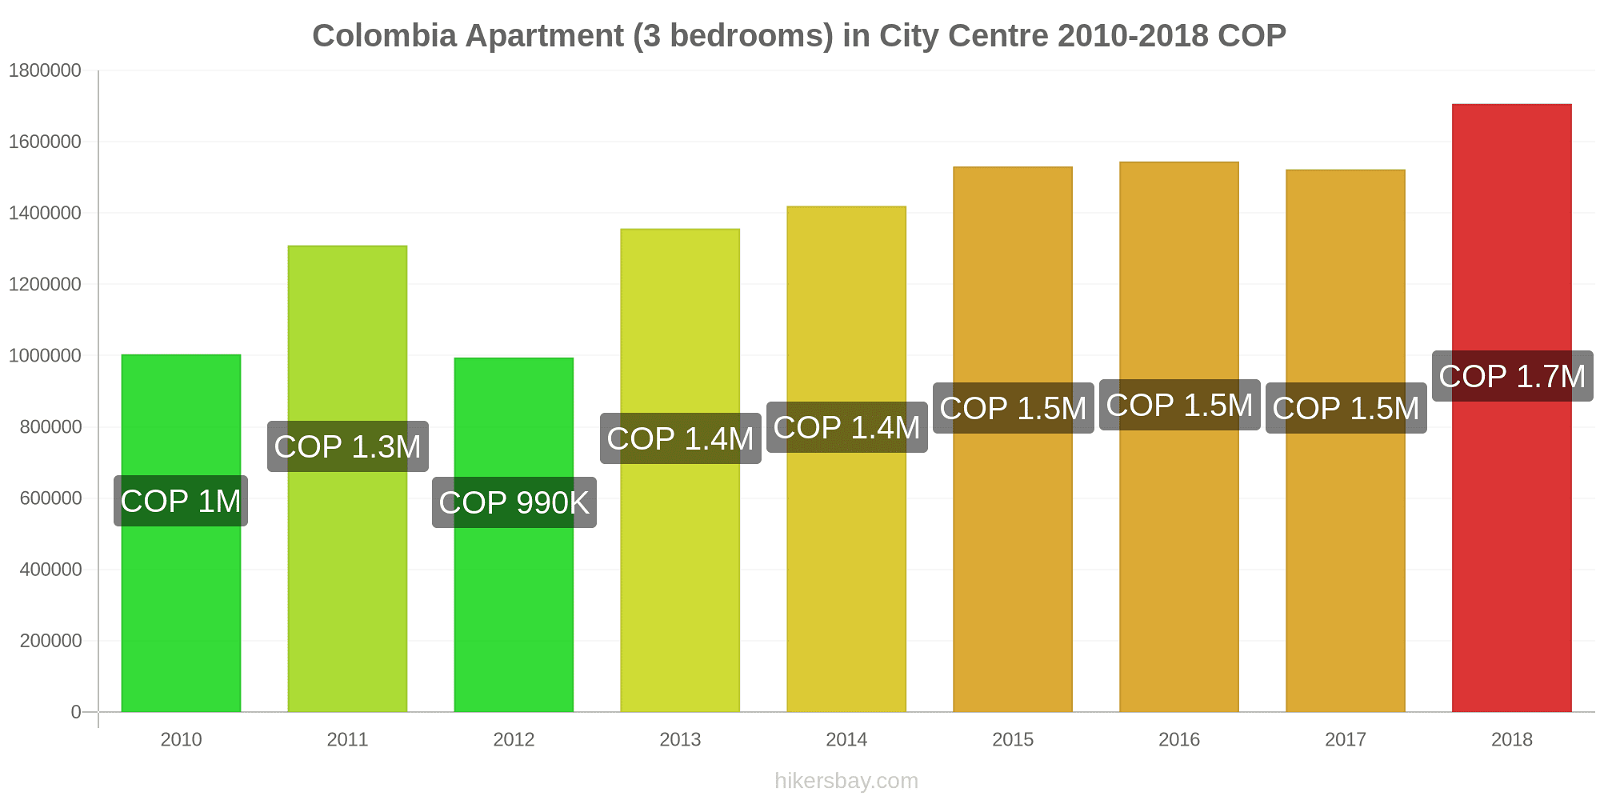 Colombia price changes Apartment (3 bedrooms) in City Centre hikersbay.com